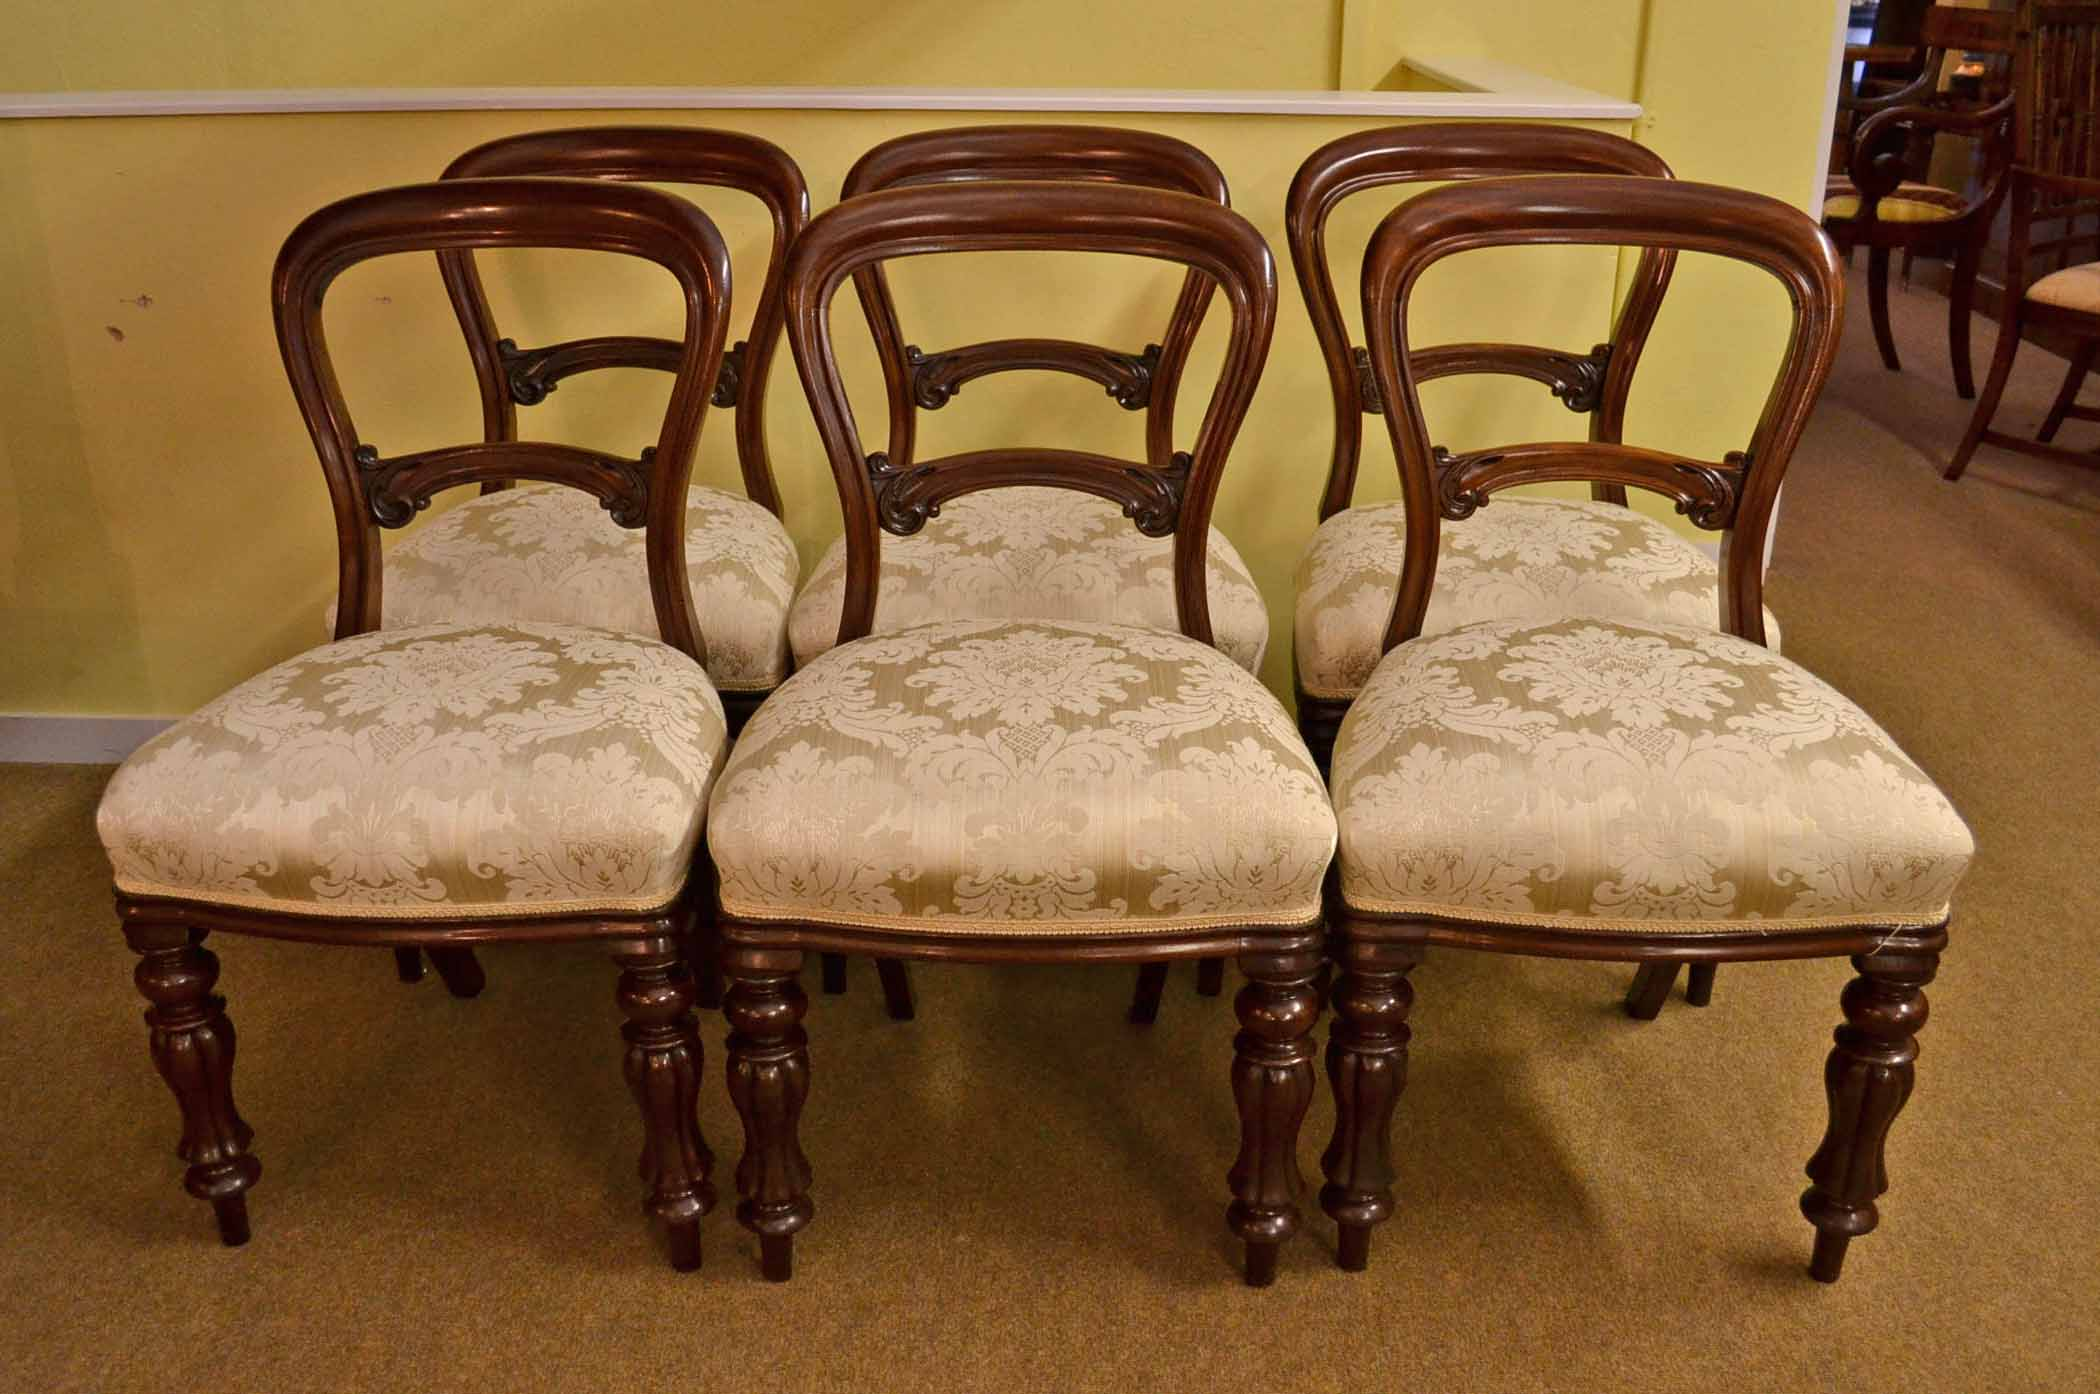 Antique victorian dining chairs - Antique Victorian Dining Chairs 7